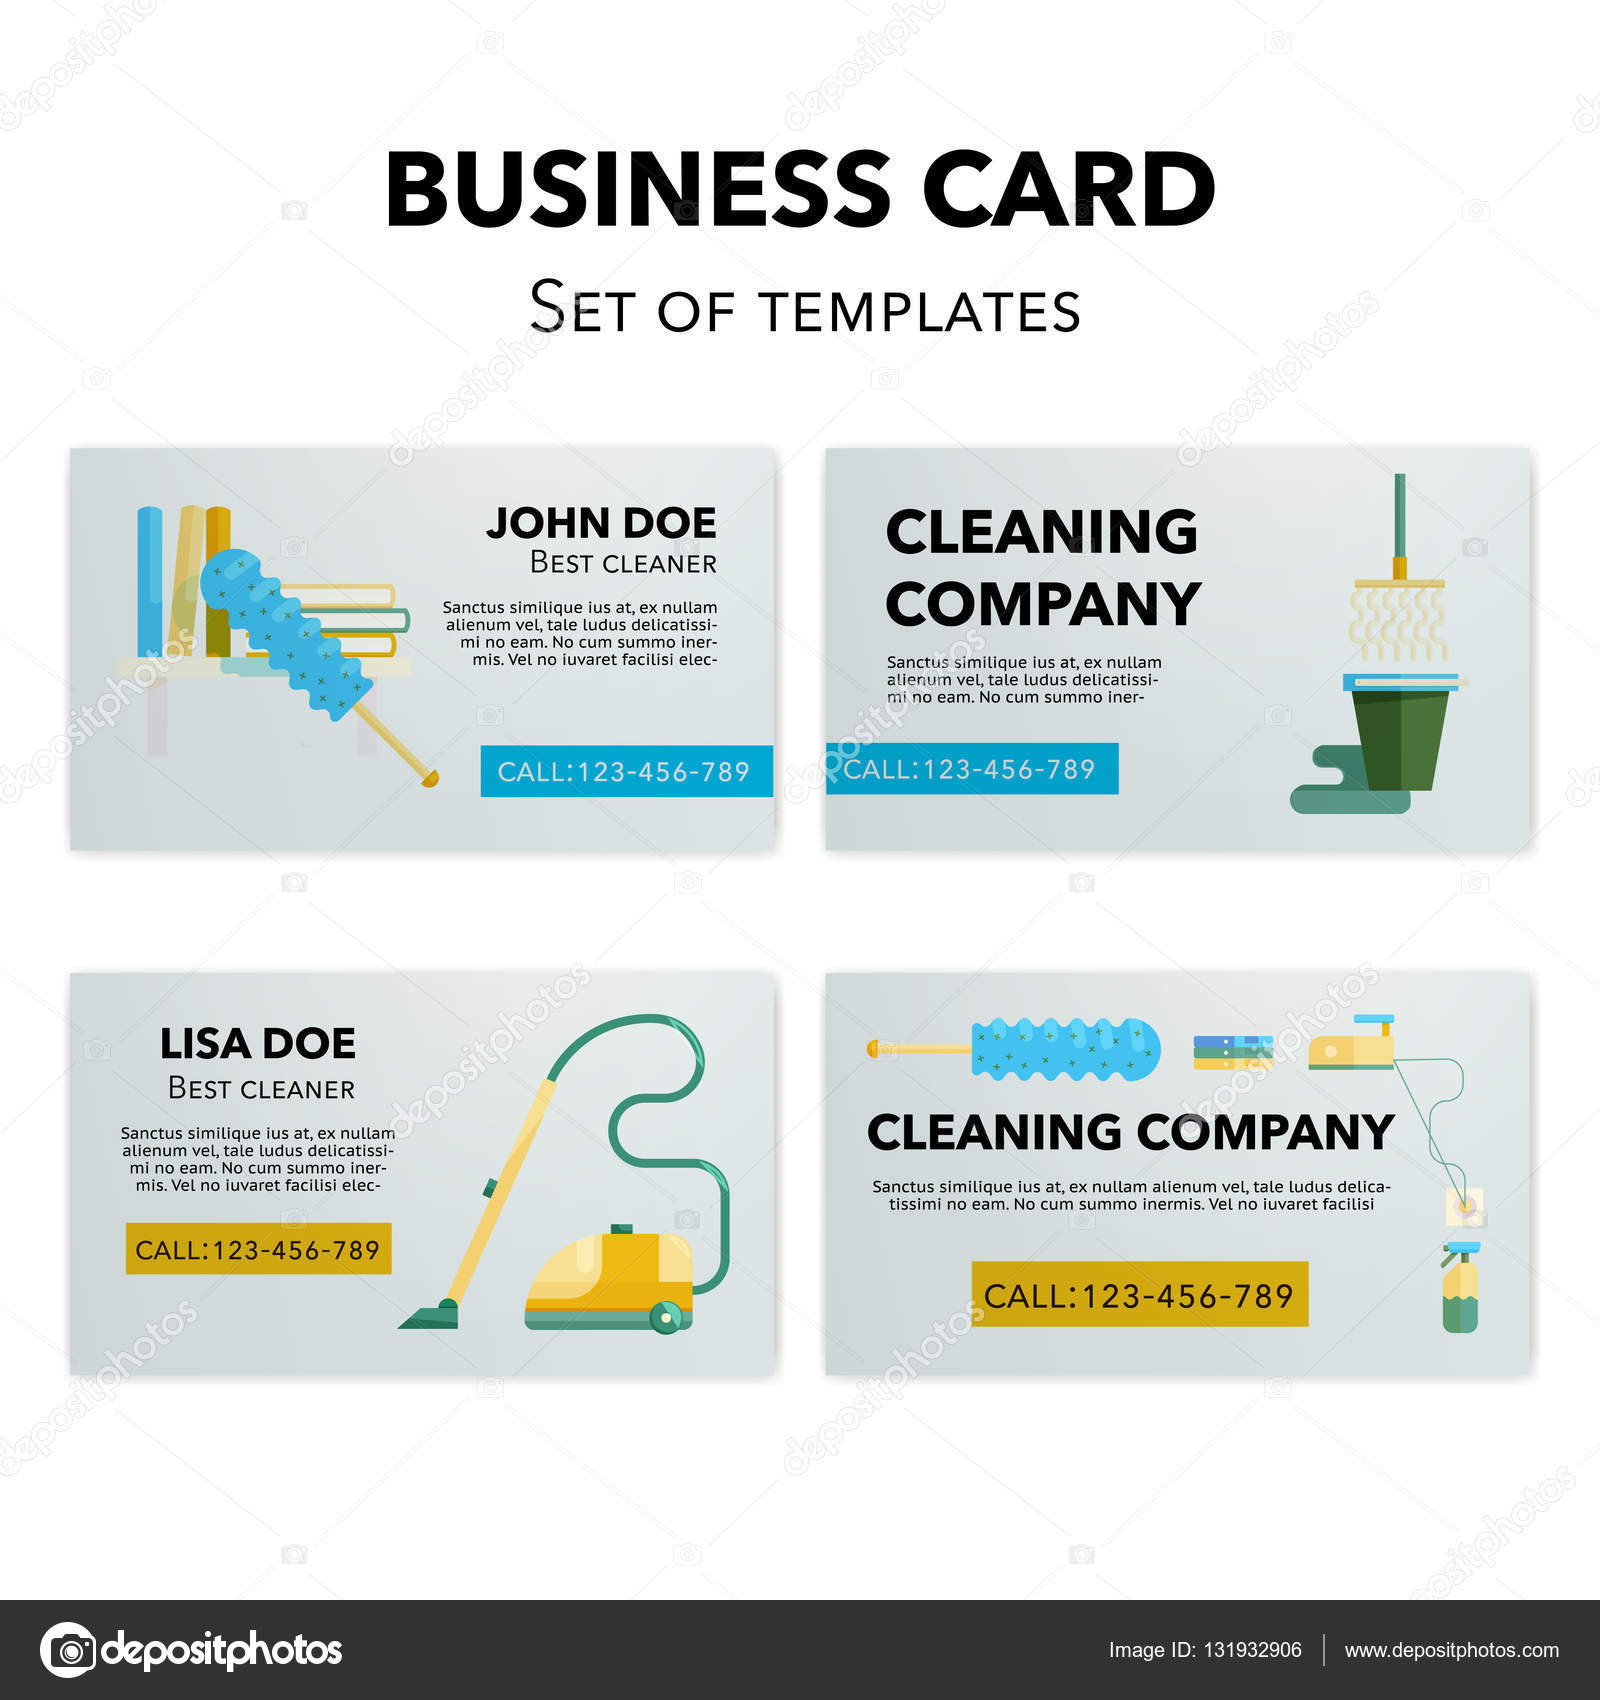 Cleaning company business cards set stock vector wonderstasy cleaning company business cards set stock vector colourmoves